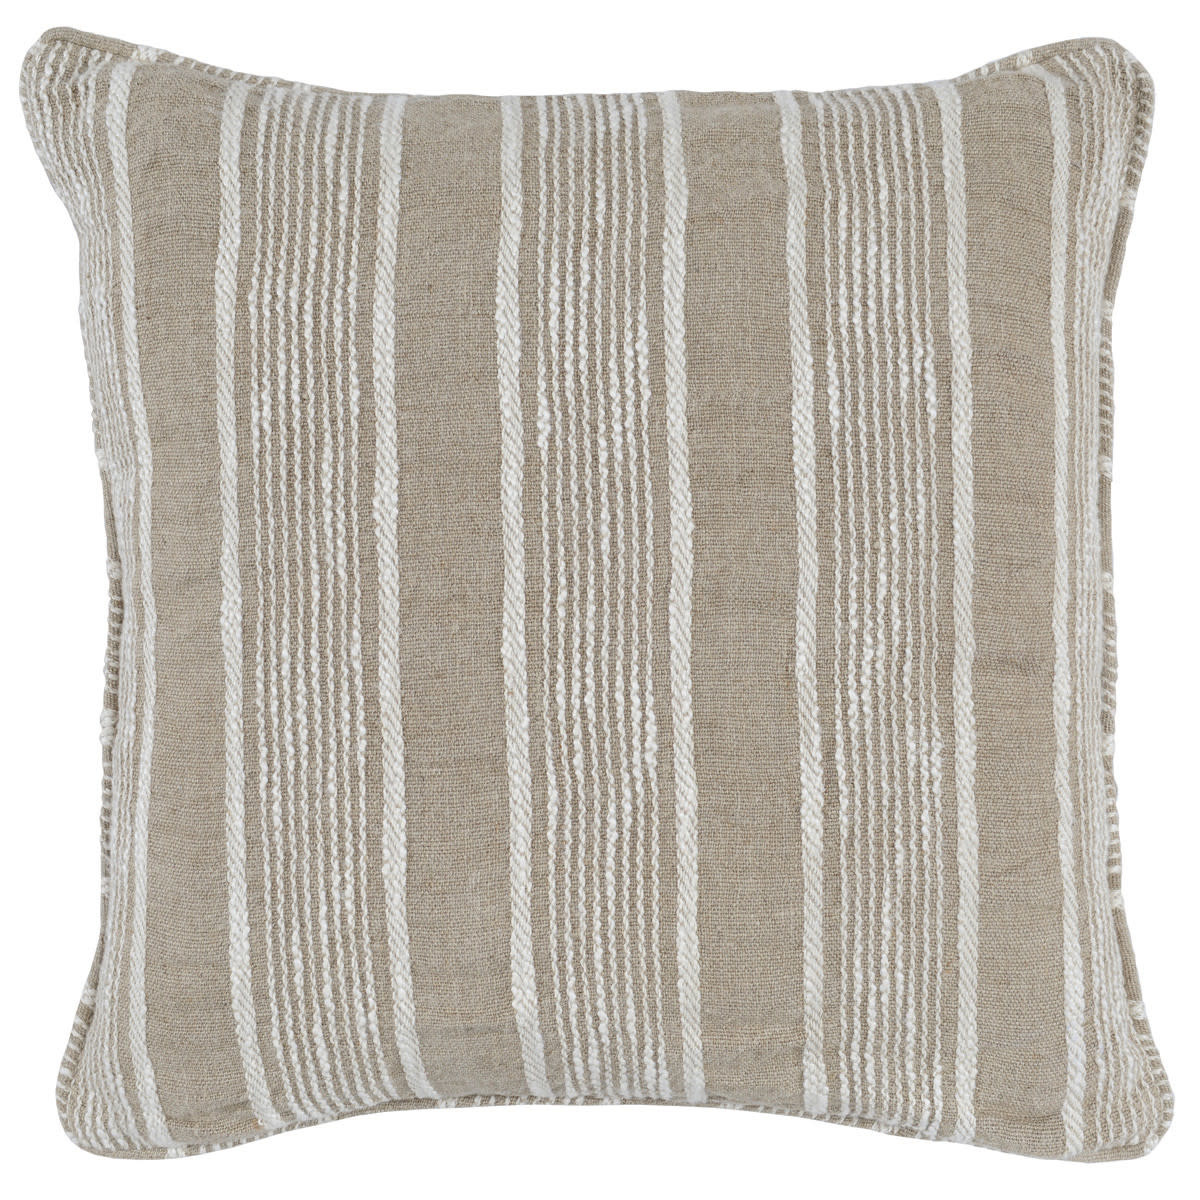 Dax Pillow - Natural 22 x 22